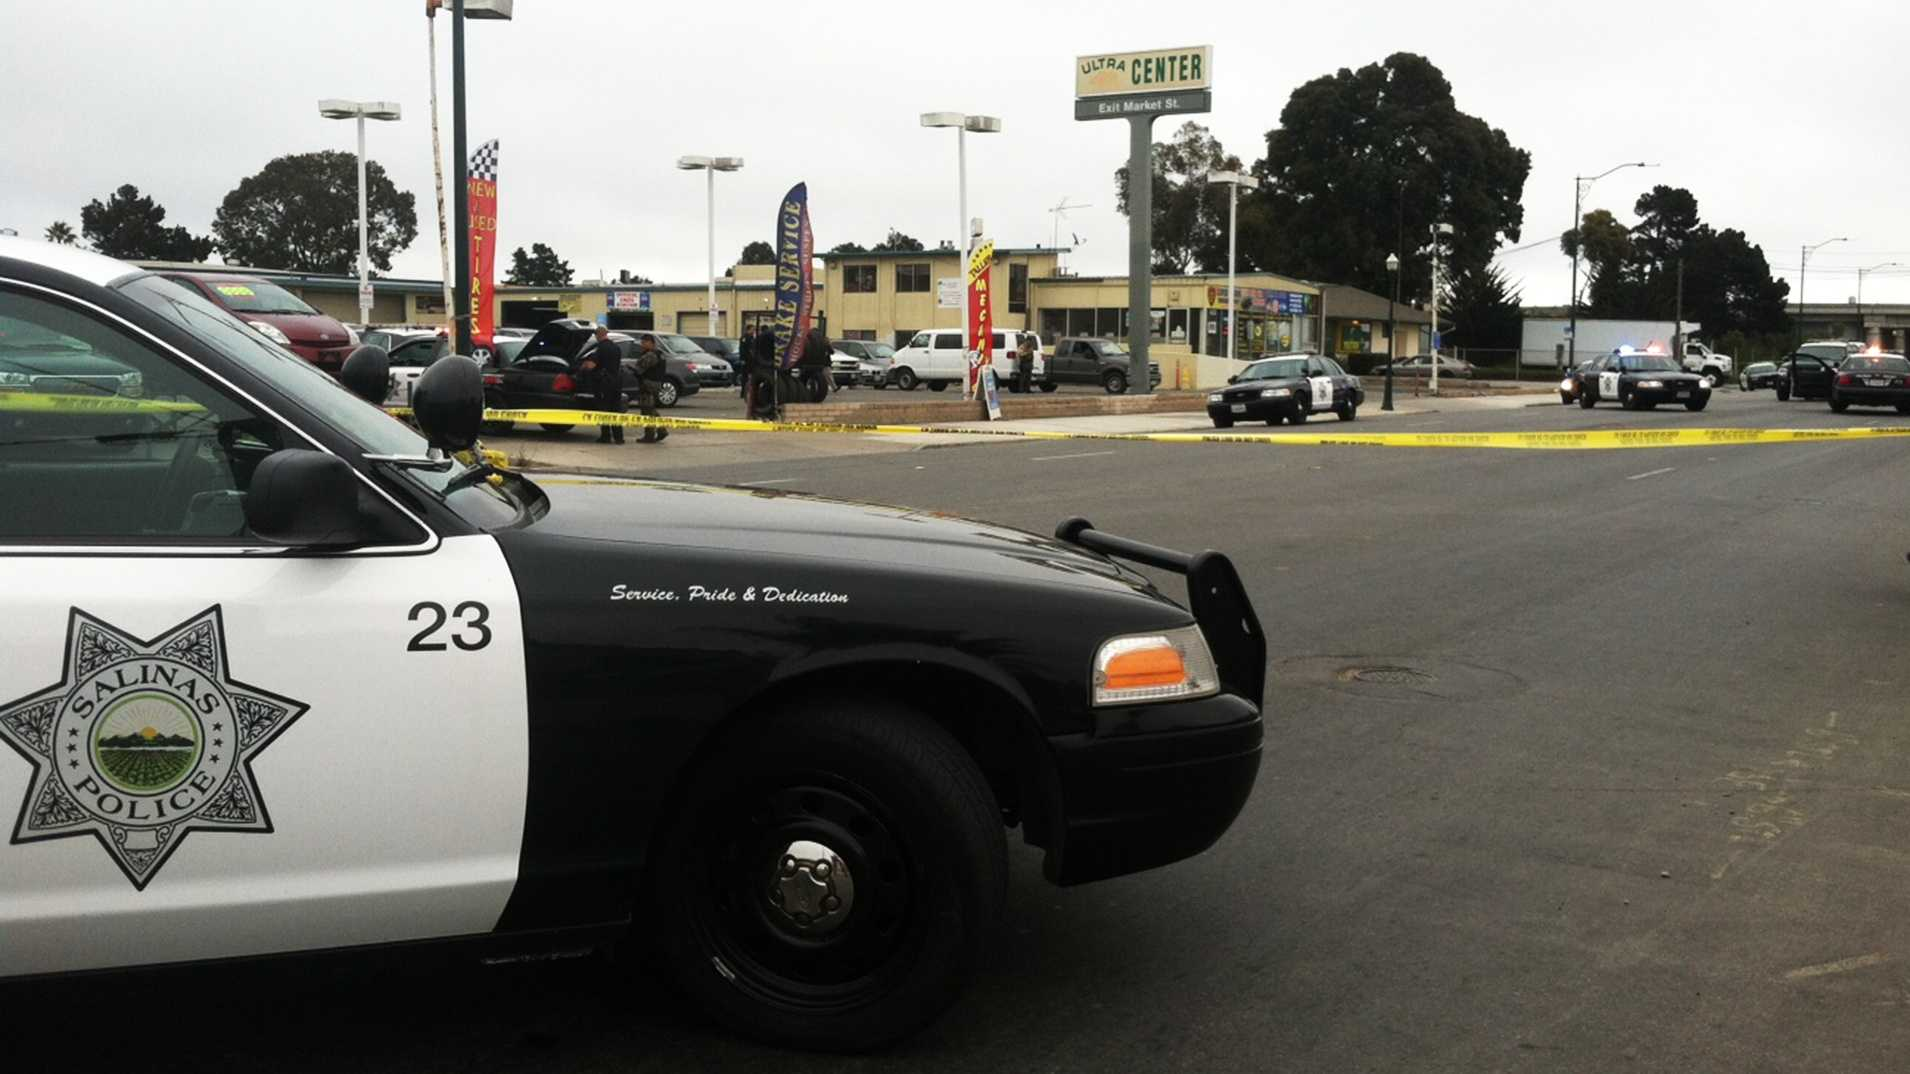 Salinas police killed Juan Acuna Friday after he opened fire on officers.